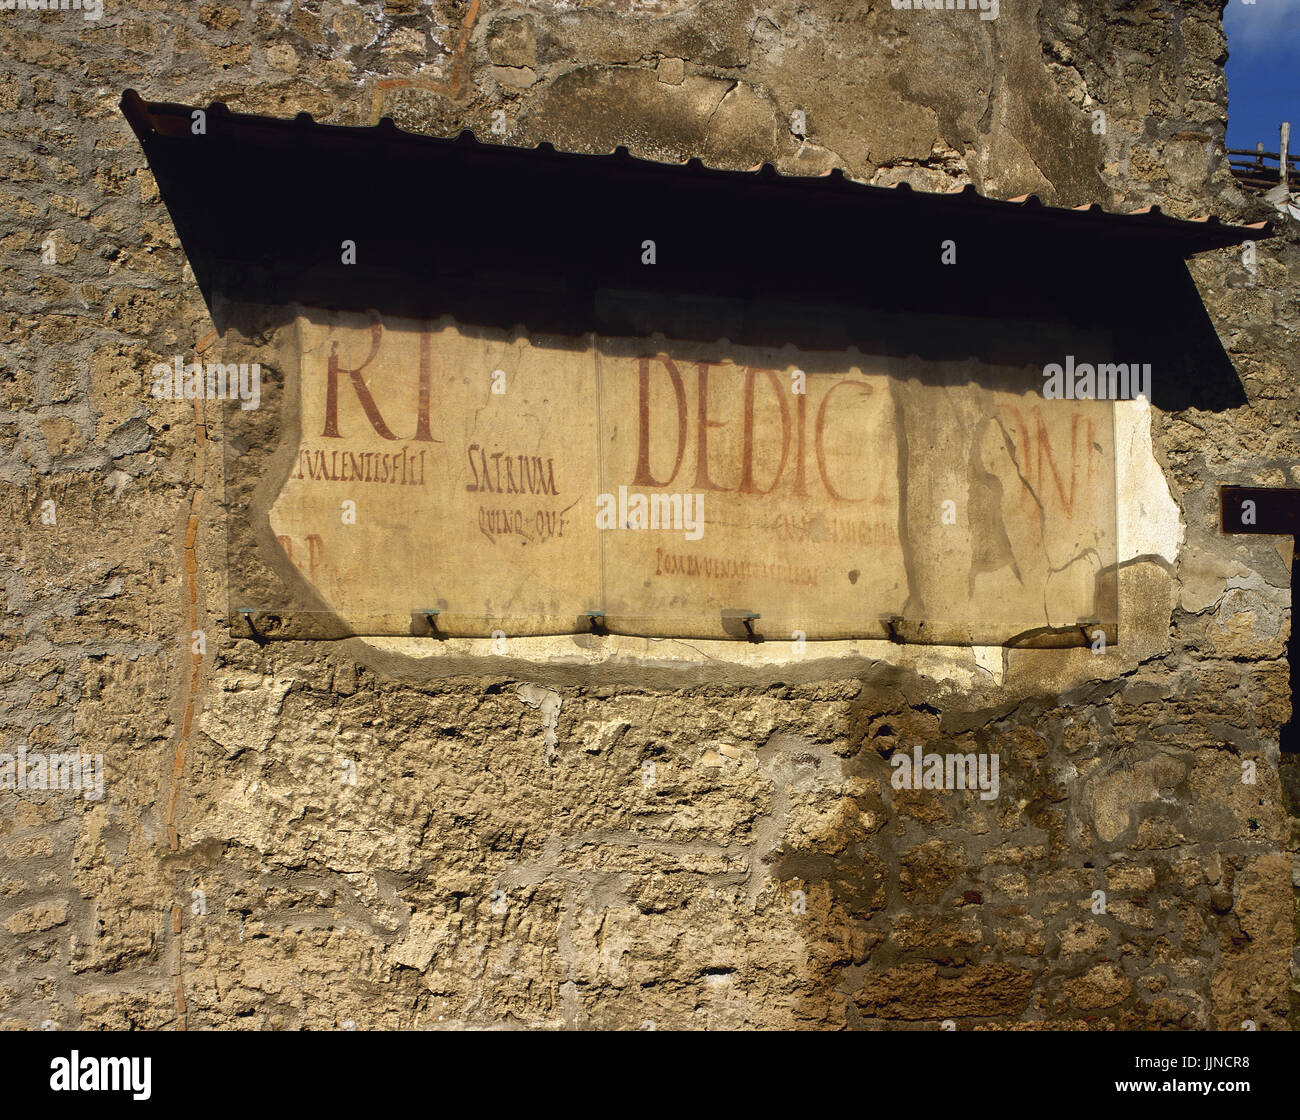 Roman Graffiti On The Wall Inscription Of Electoral Propaganda Advertisements For Taverns And Business Advertising Road Of Abundance Pompeii Italy